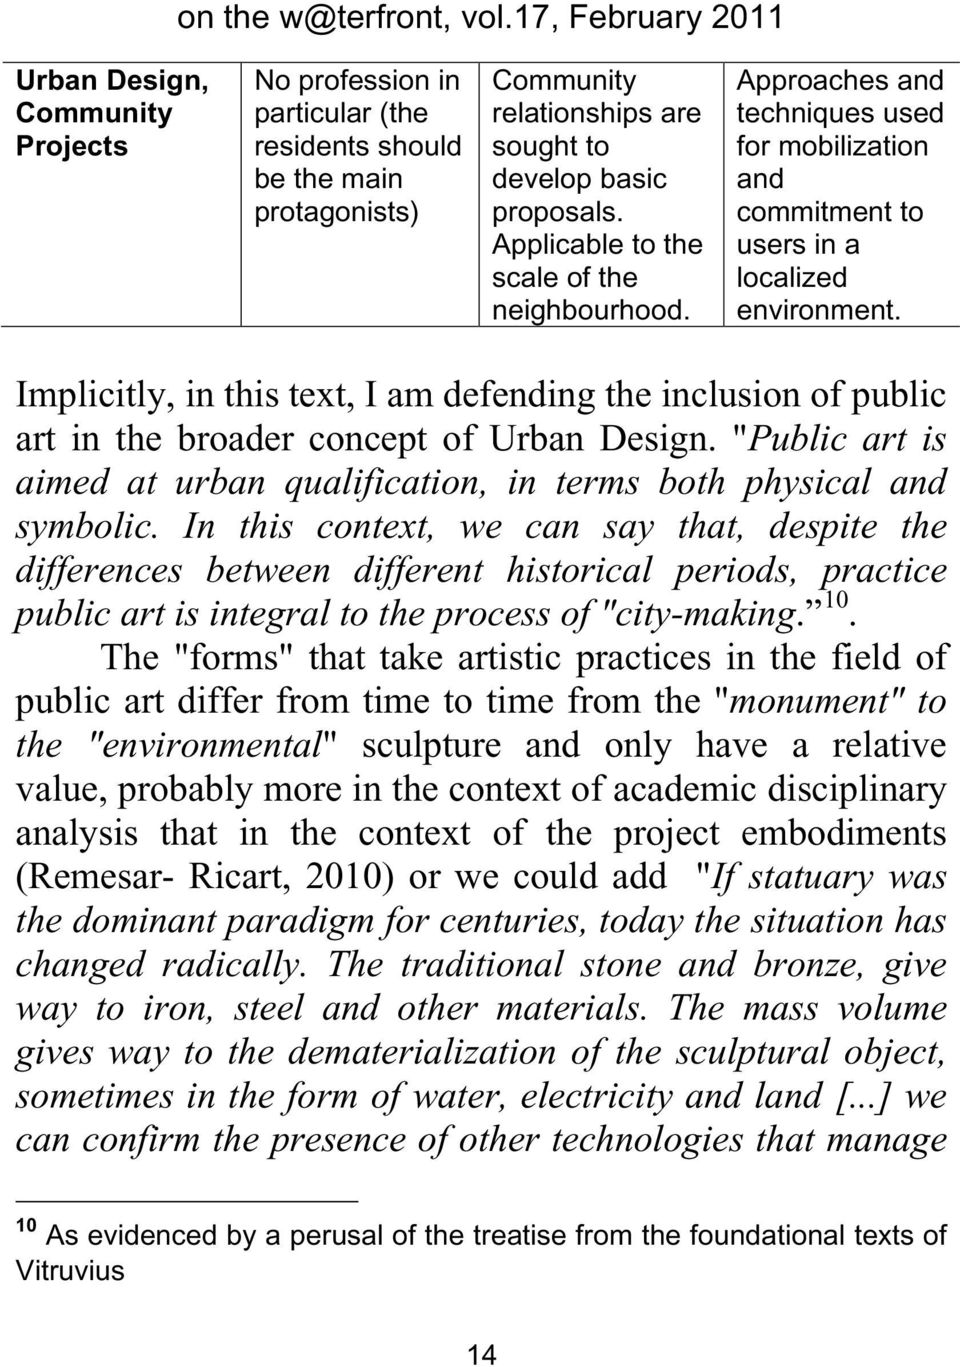 "Implicitly, in this text, I am defending the inclusion of public art in the broader concept of Urban Design. ""Public art is aimed at urban qualification, in terms both physical and symbolic."